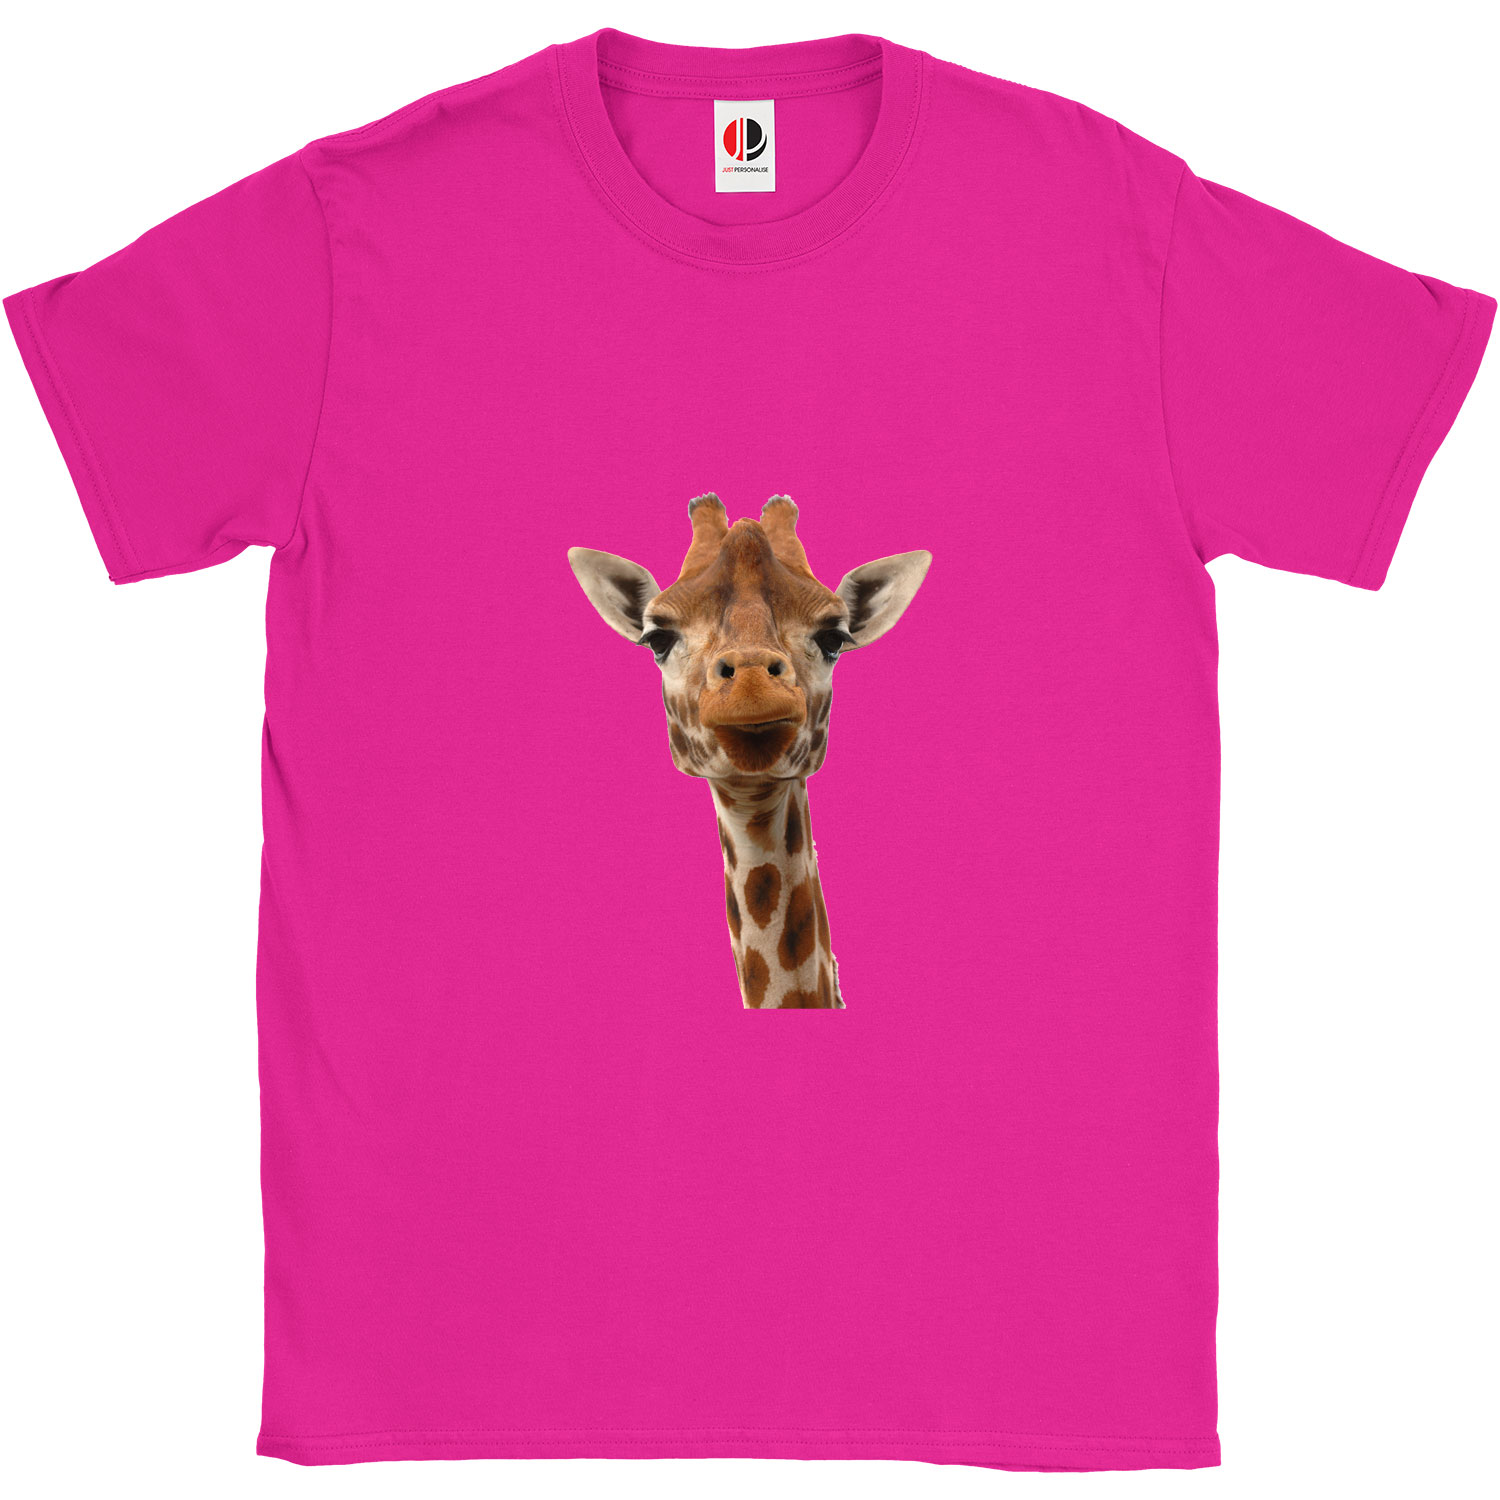 Kid's Hot Pink T-Shirt (9-11 Years Old)